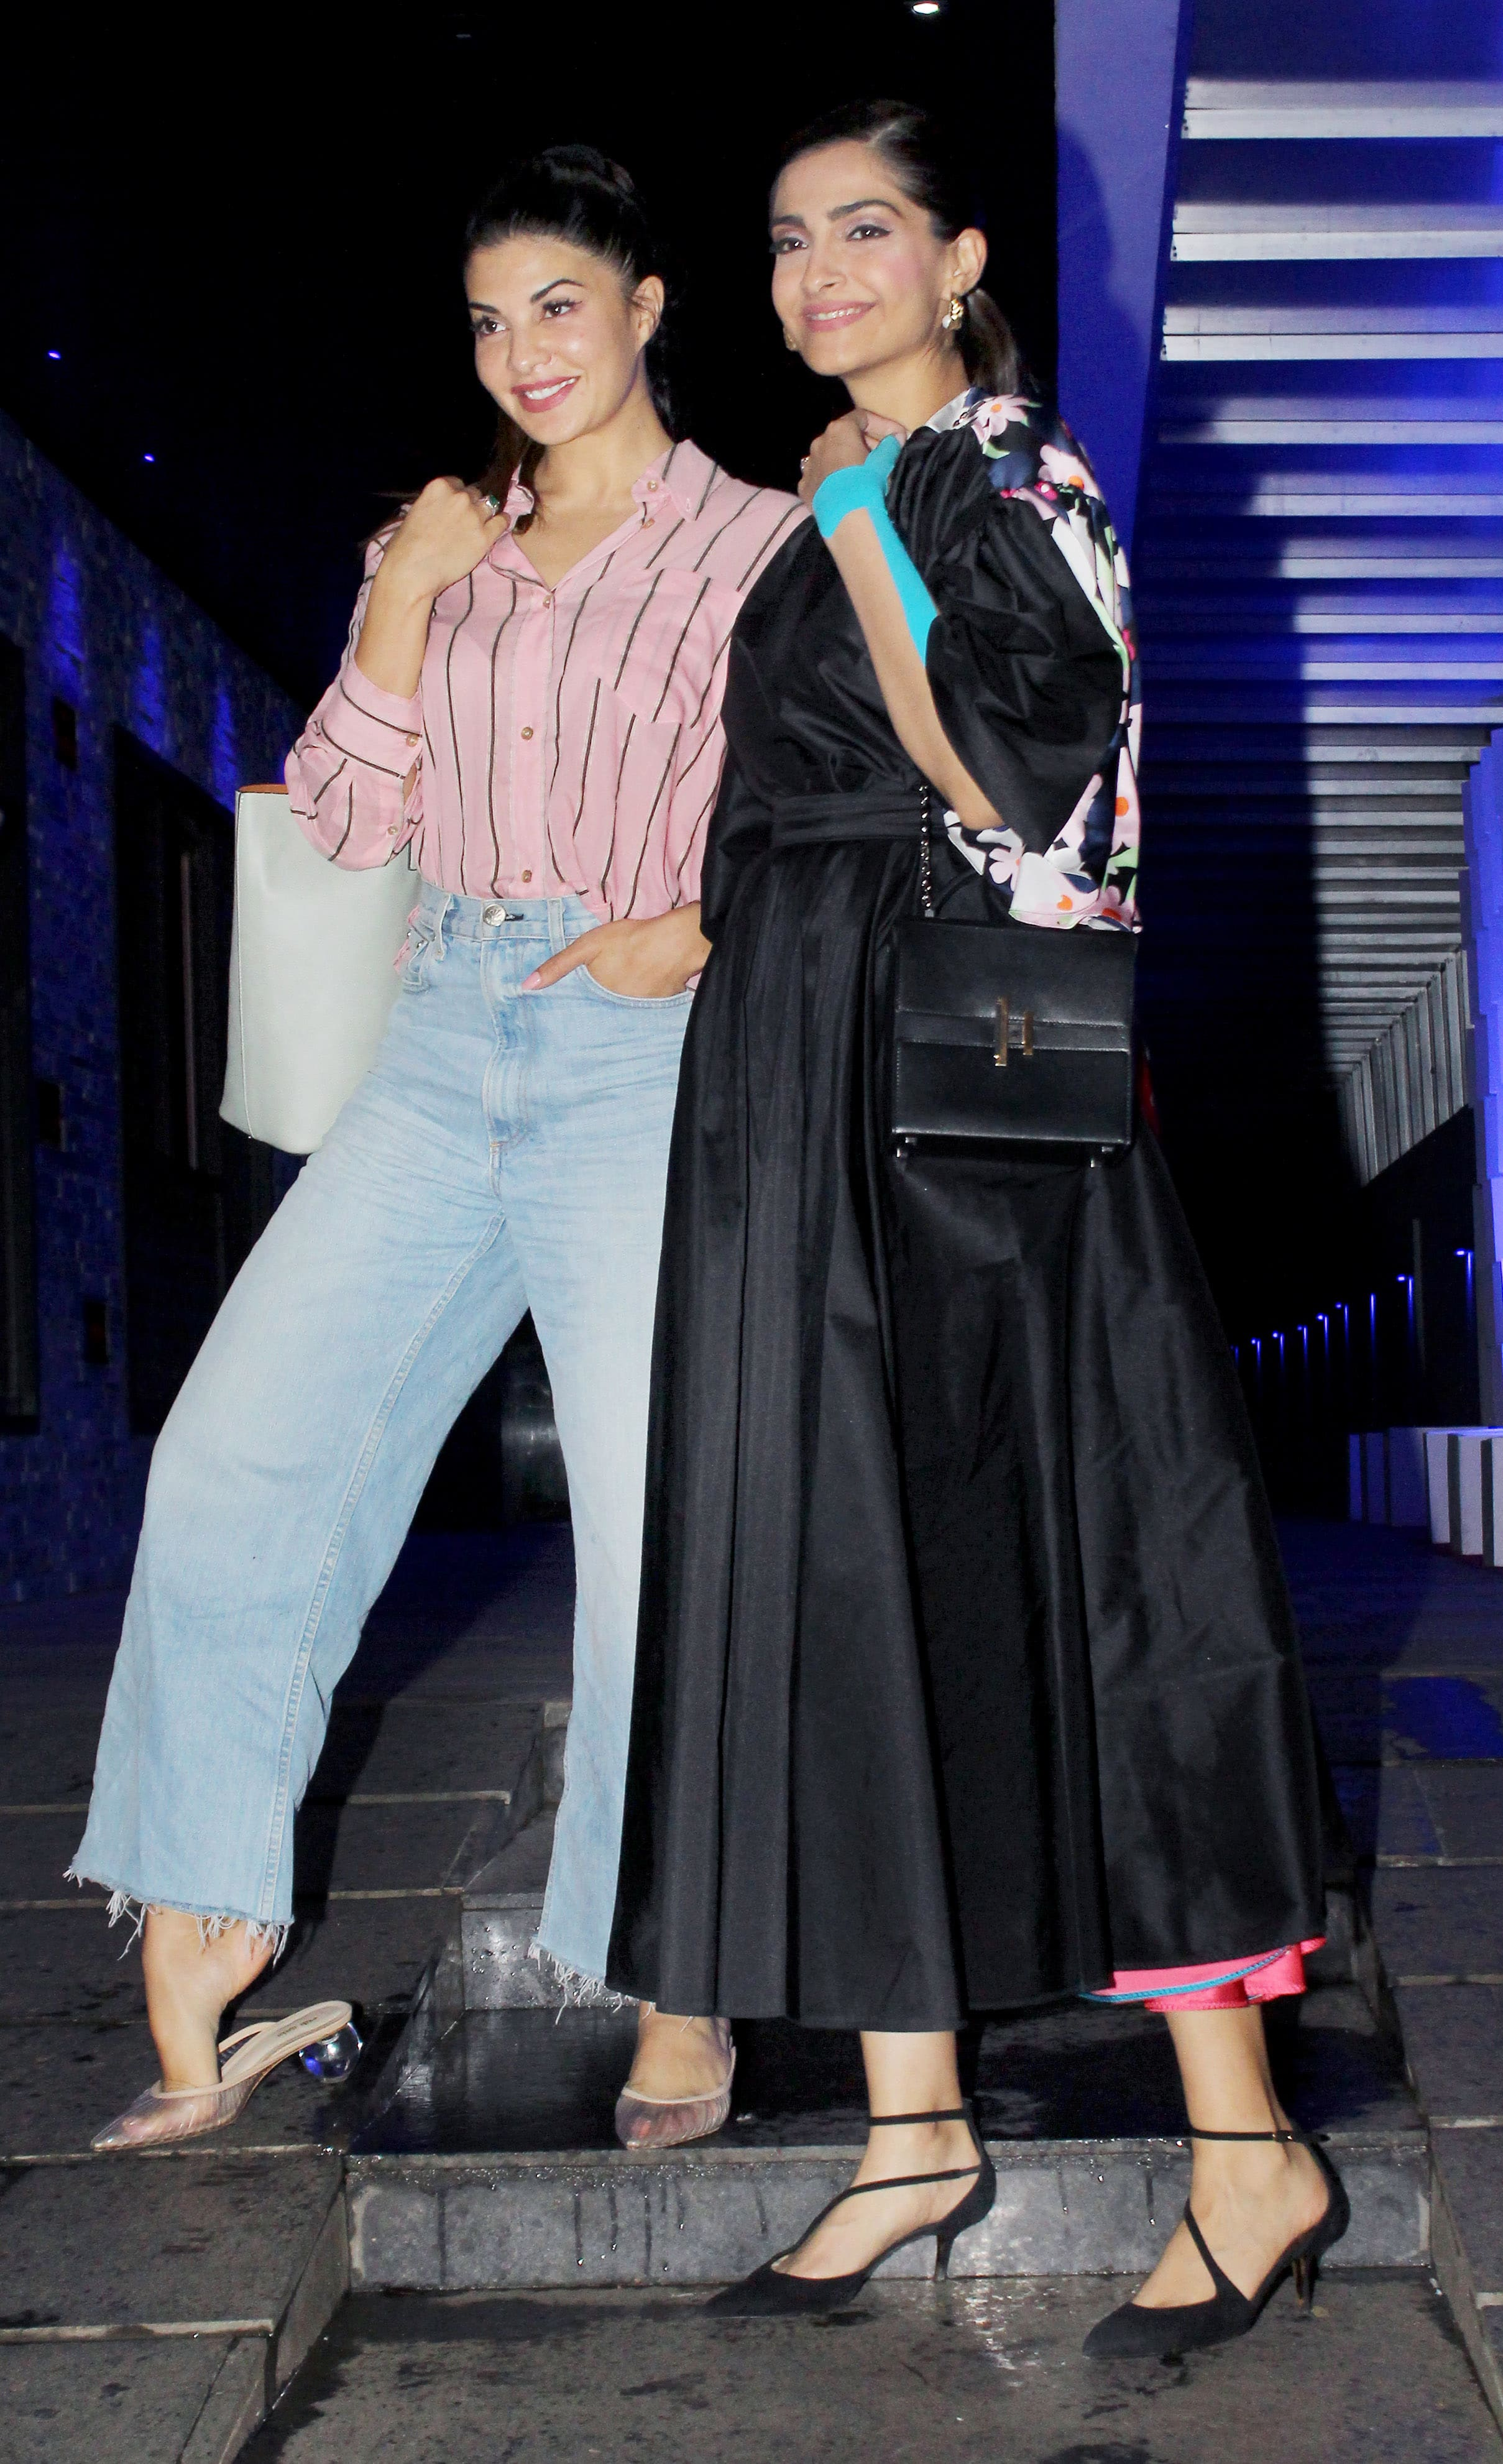 Sonam and Jacqueline are all smiles